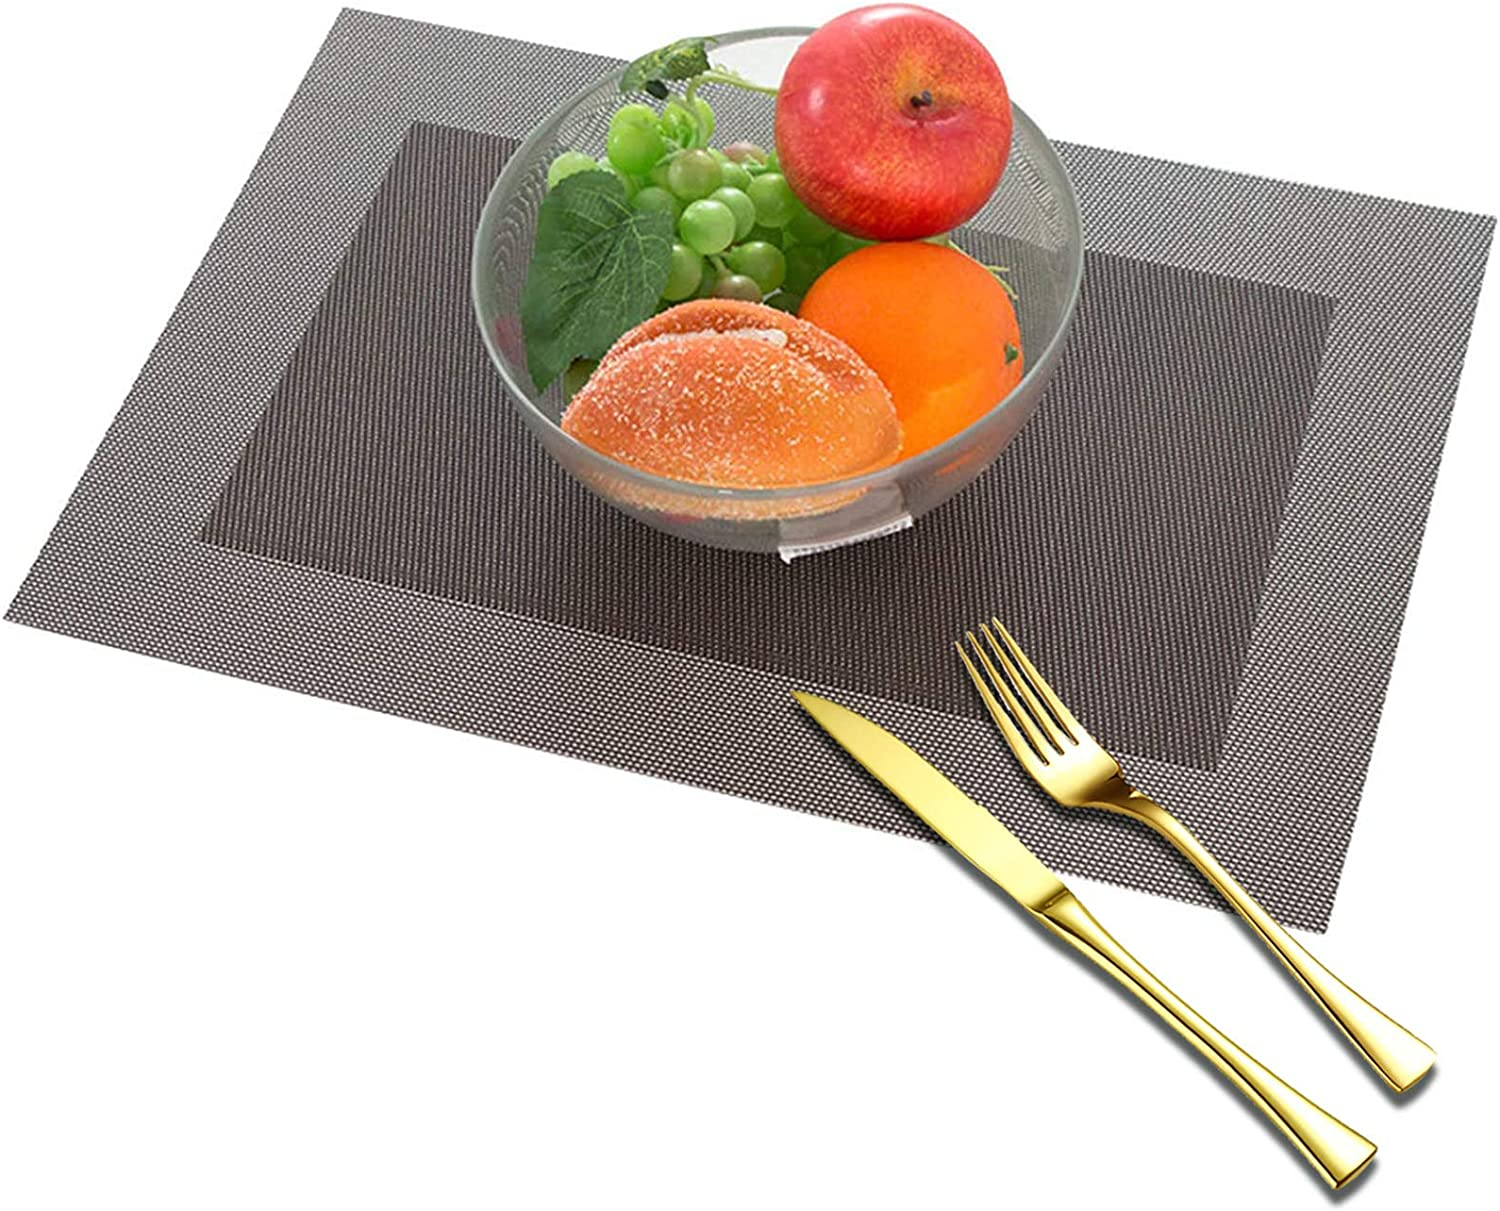 YLJXXY 4 PCS Now free shipping free shipping European Style PVC Stain Place Heat Mats Resistant